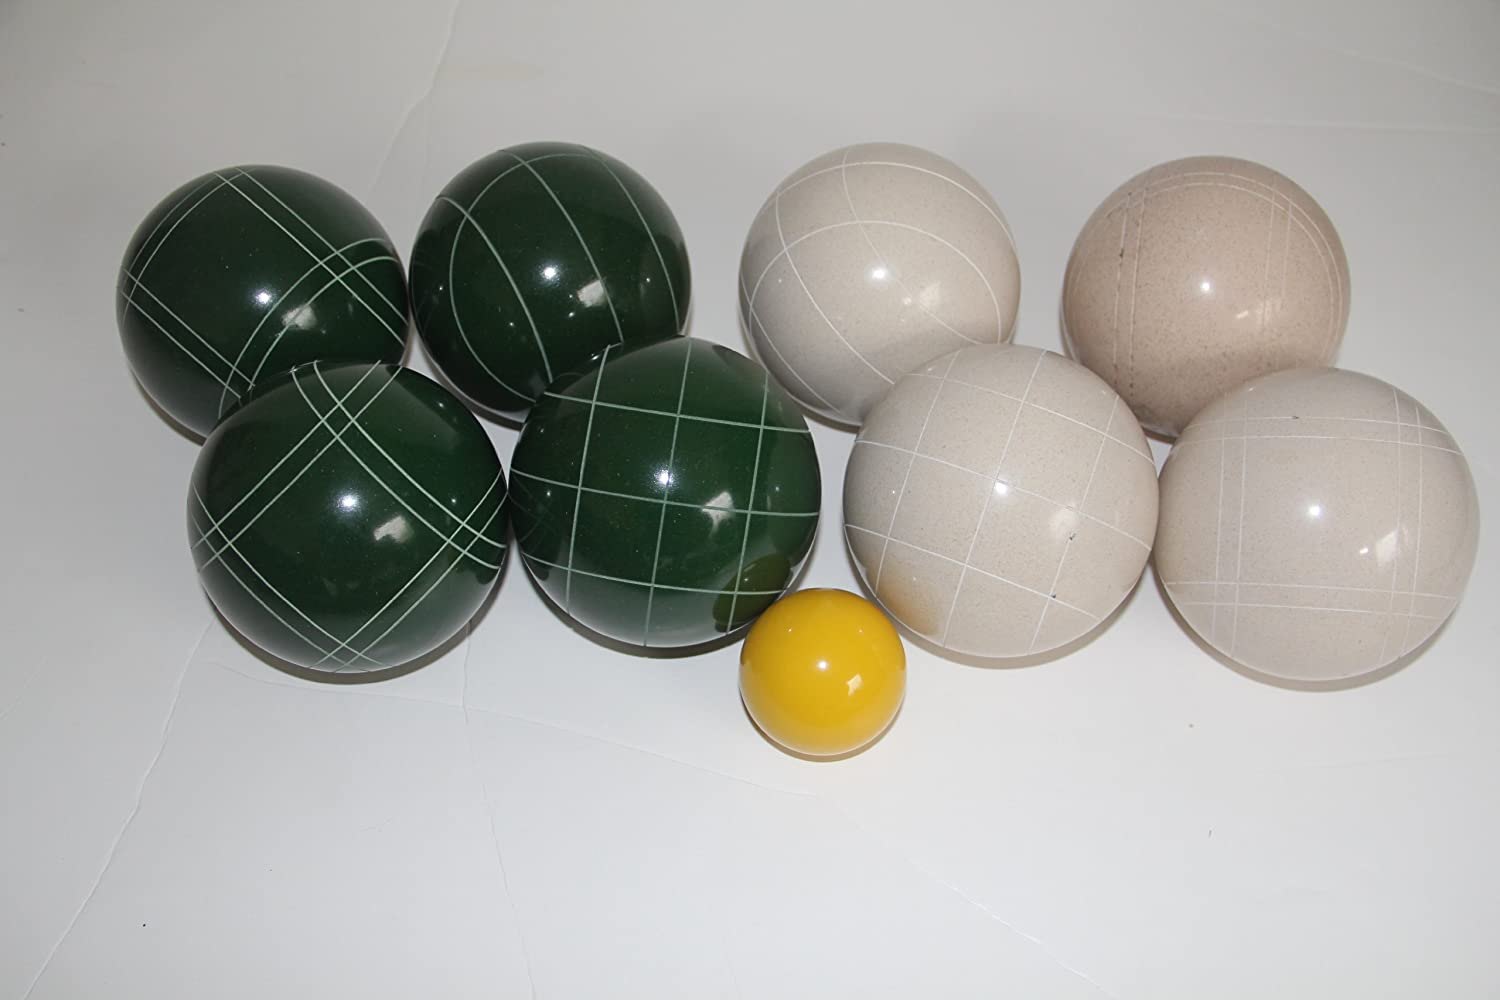 Premium Quality EPCO Tournament Bocce Set - 110mm White and Green Bocce Balls...